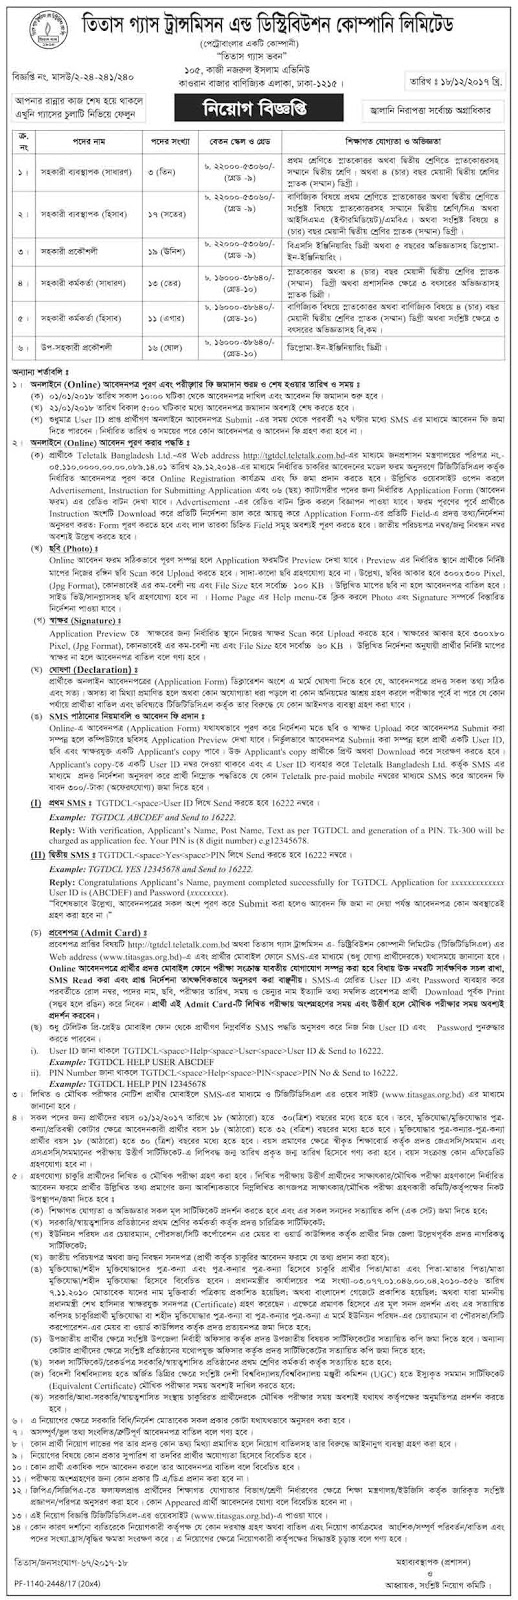 Titas Gas Transmission and Distribution Company Limited (TGTDCL) Job Circular 2018